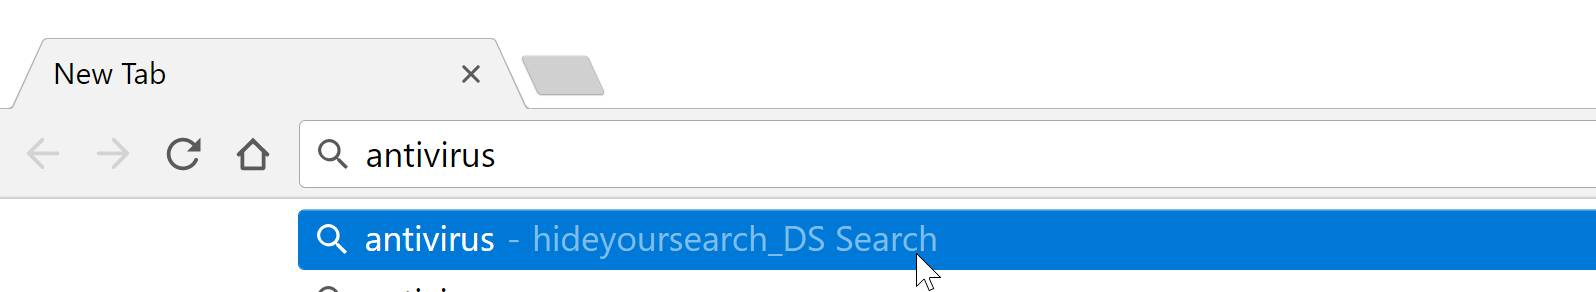 Hideyoursearch_DS search redirect virus